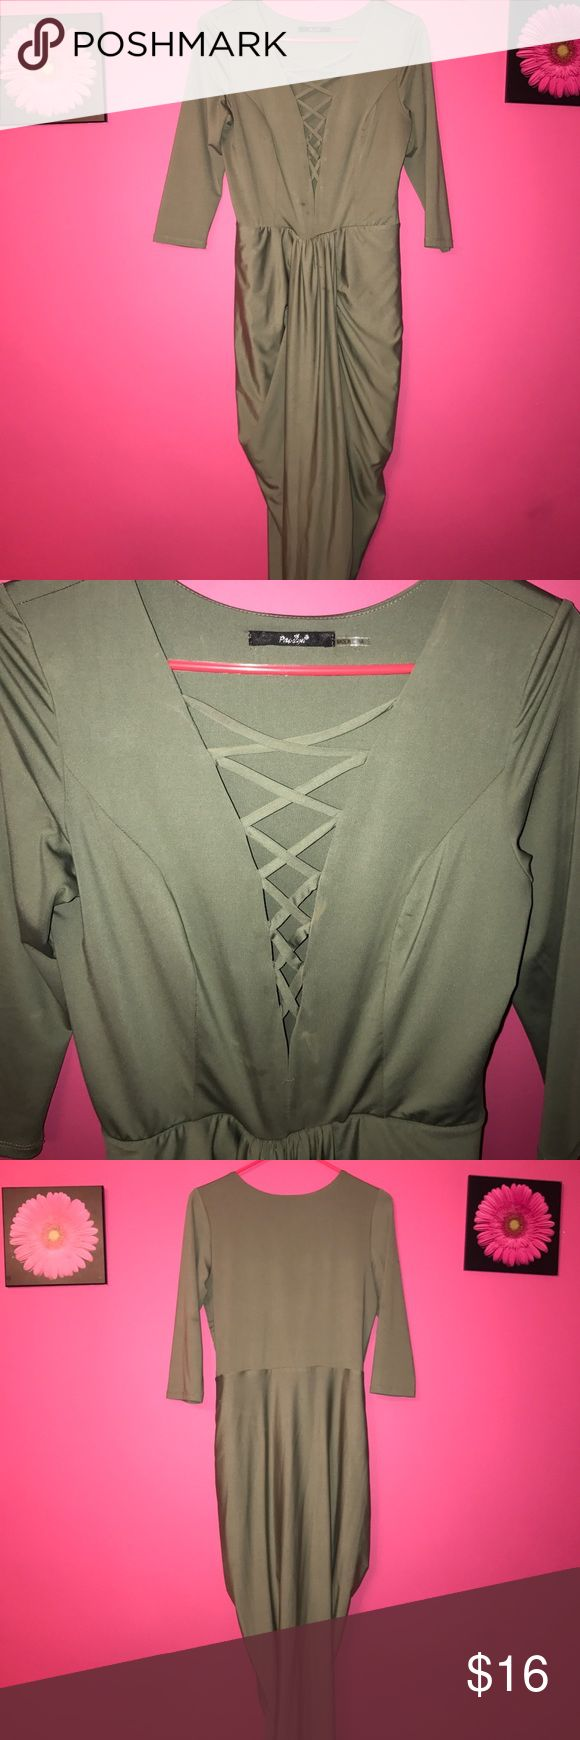 Green tight fitting dress Very cute green lace up top dress! Worn once, perfect condition! Quarter sleeve, tight fitting. Goes down to my ankles! Dresses Midi